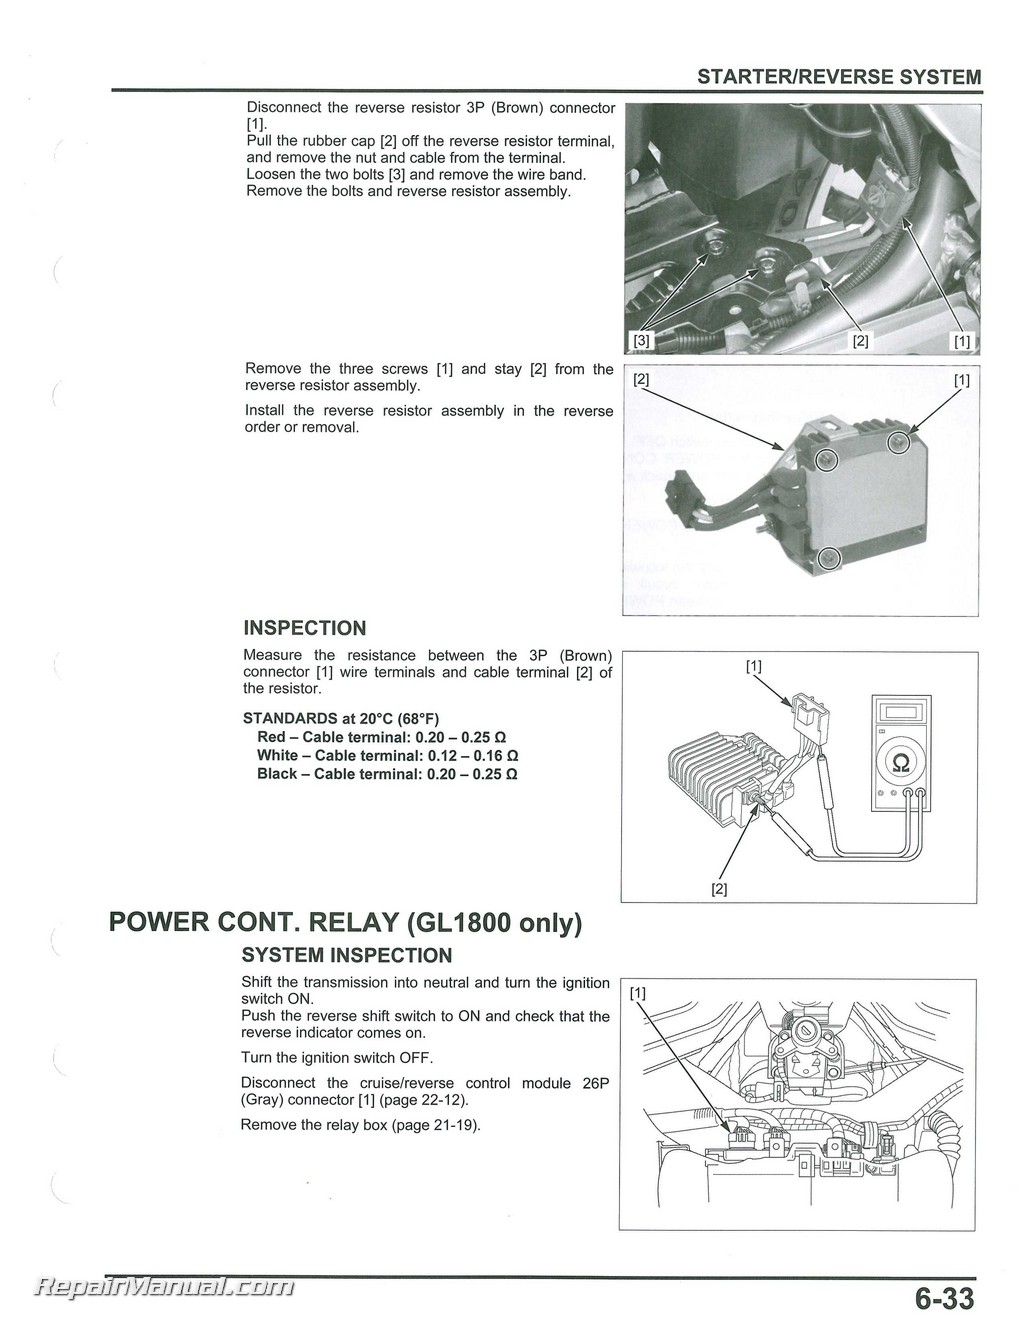 2012 – 2017 Honda GL1800A/B GoldWing Motorcycle Service & Electrical  Troubleshooting Manual